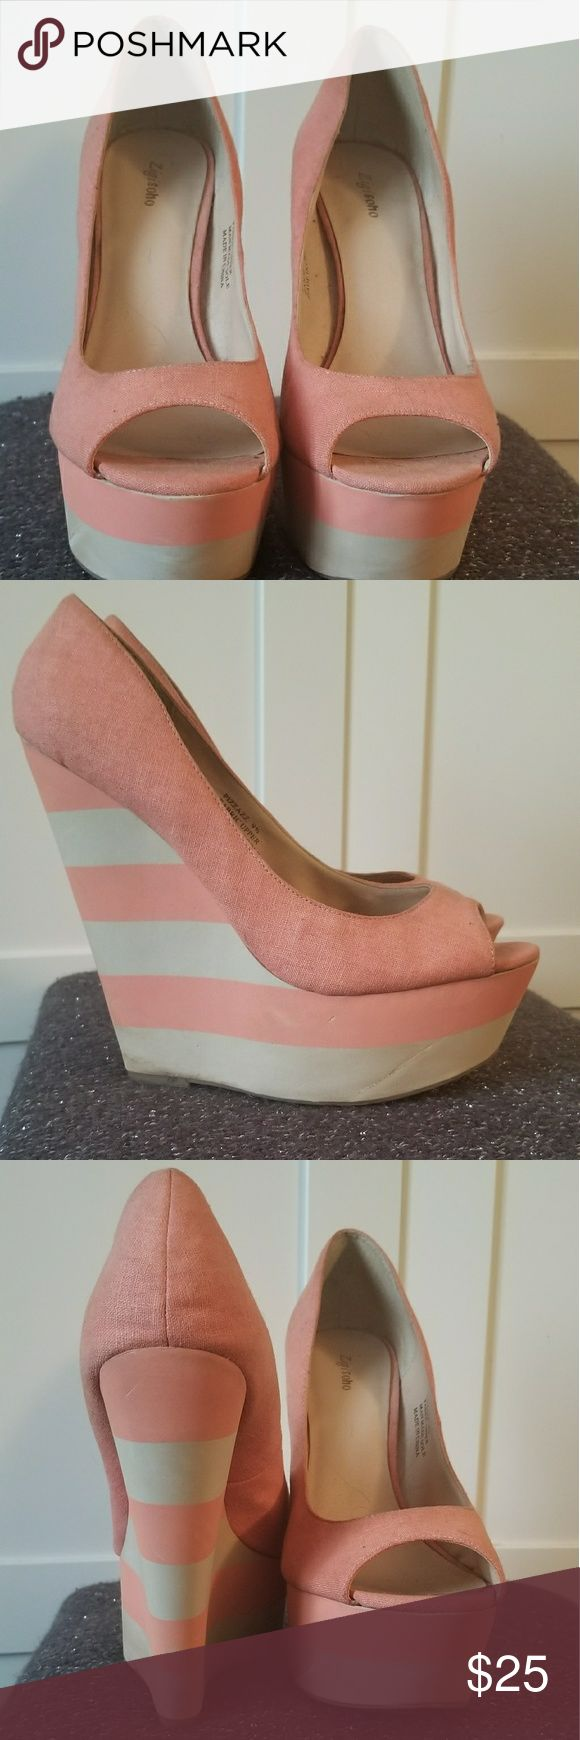 Peep toe Coral Striped Wedge Heel Size 9.5 Coral Linen Upper, beige and coral striped 5inch heel, platform base, peep toe. Couple of scuffs on heel. Zigi Soho Shoes Wedges